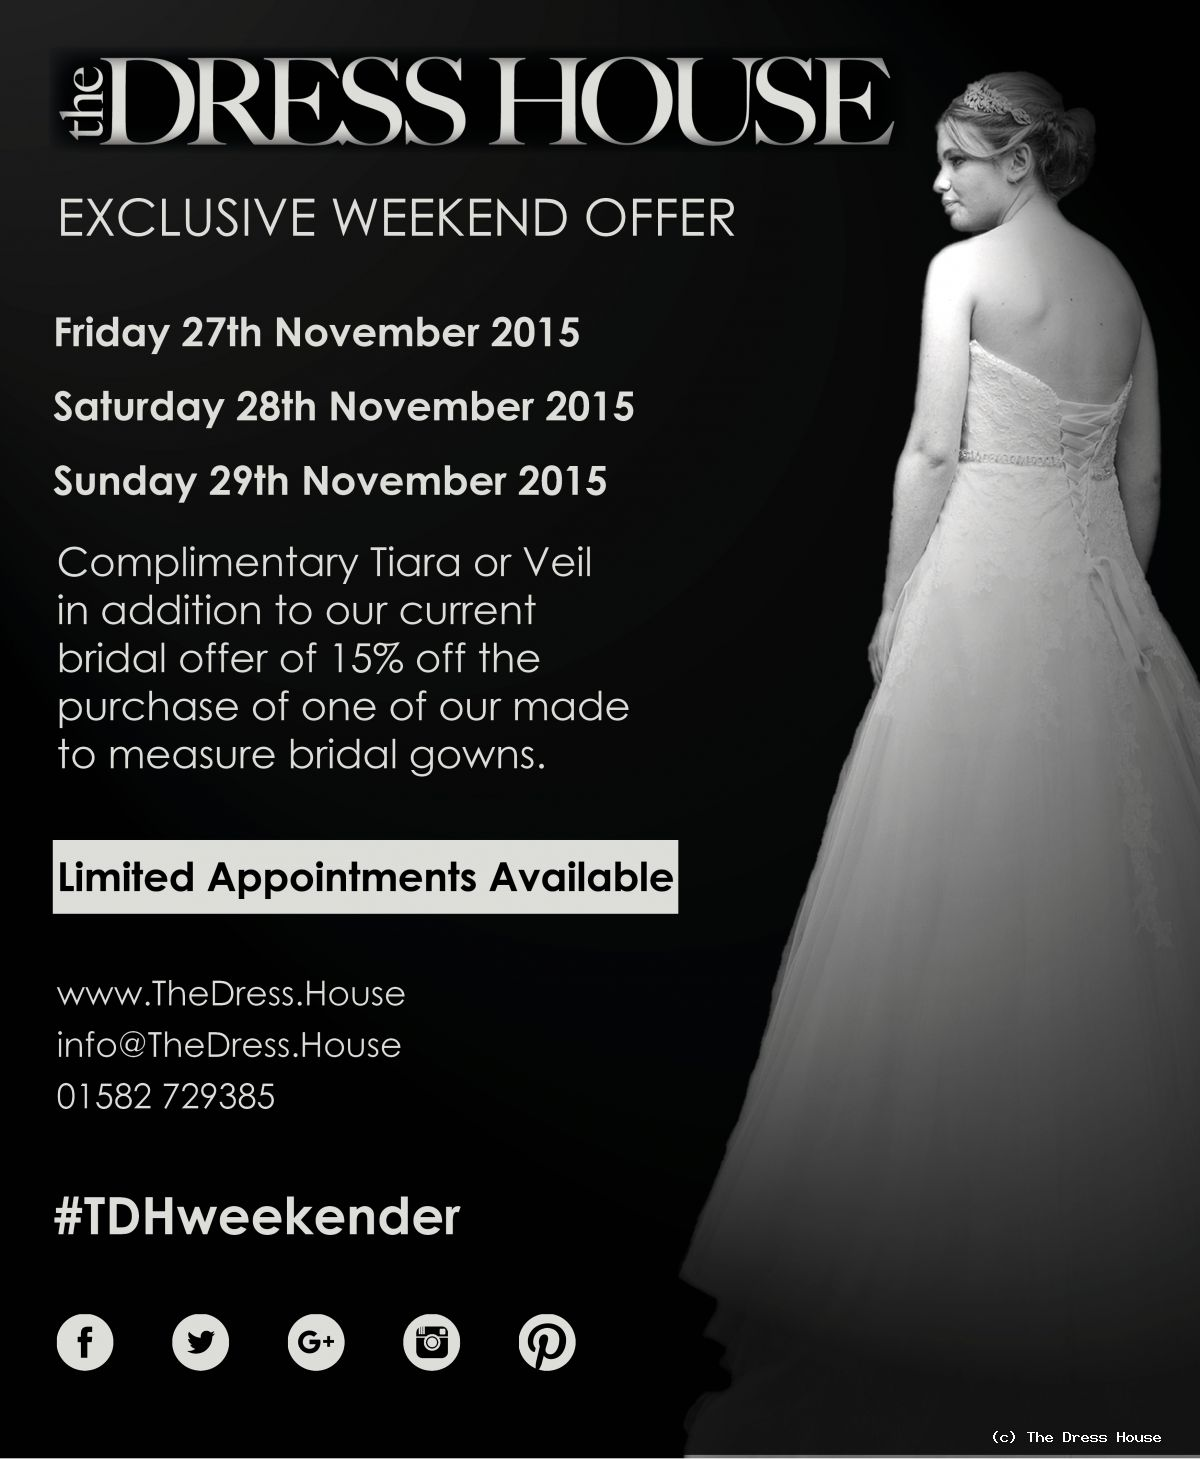 Wedding Weekend Offer On Bridal Gowns | News | The Dress House